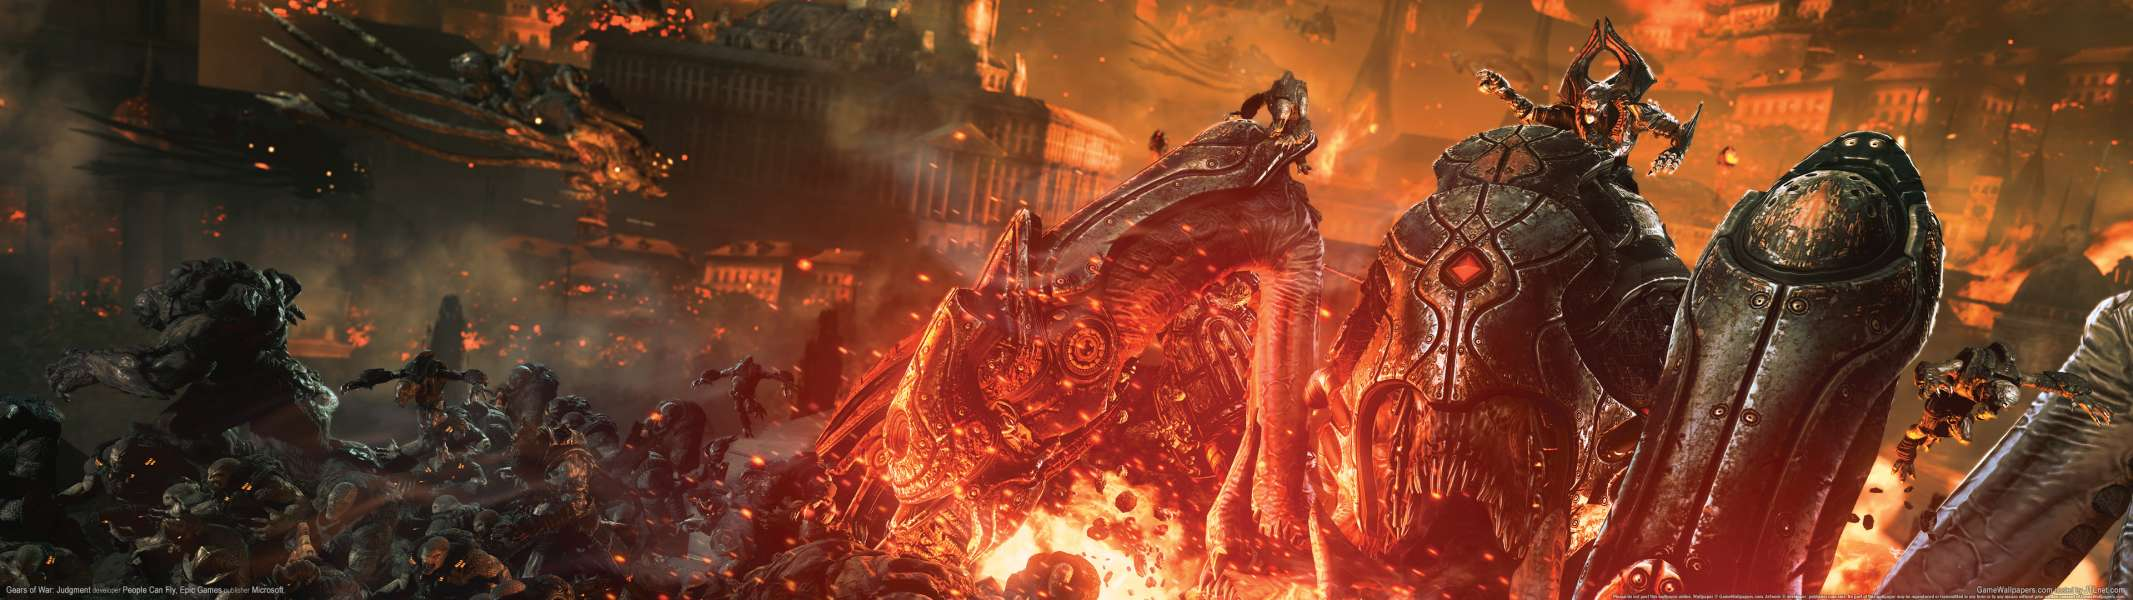 Gears of War: Judgment dual screen wallpaper or background